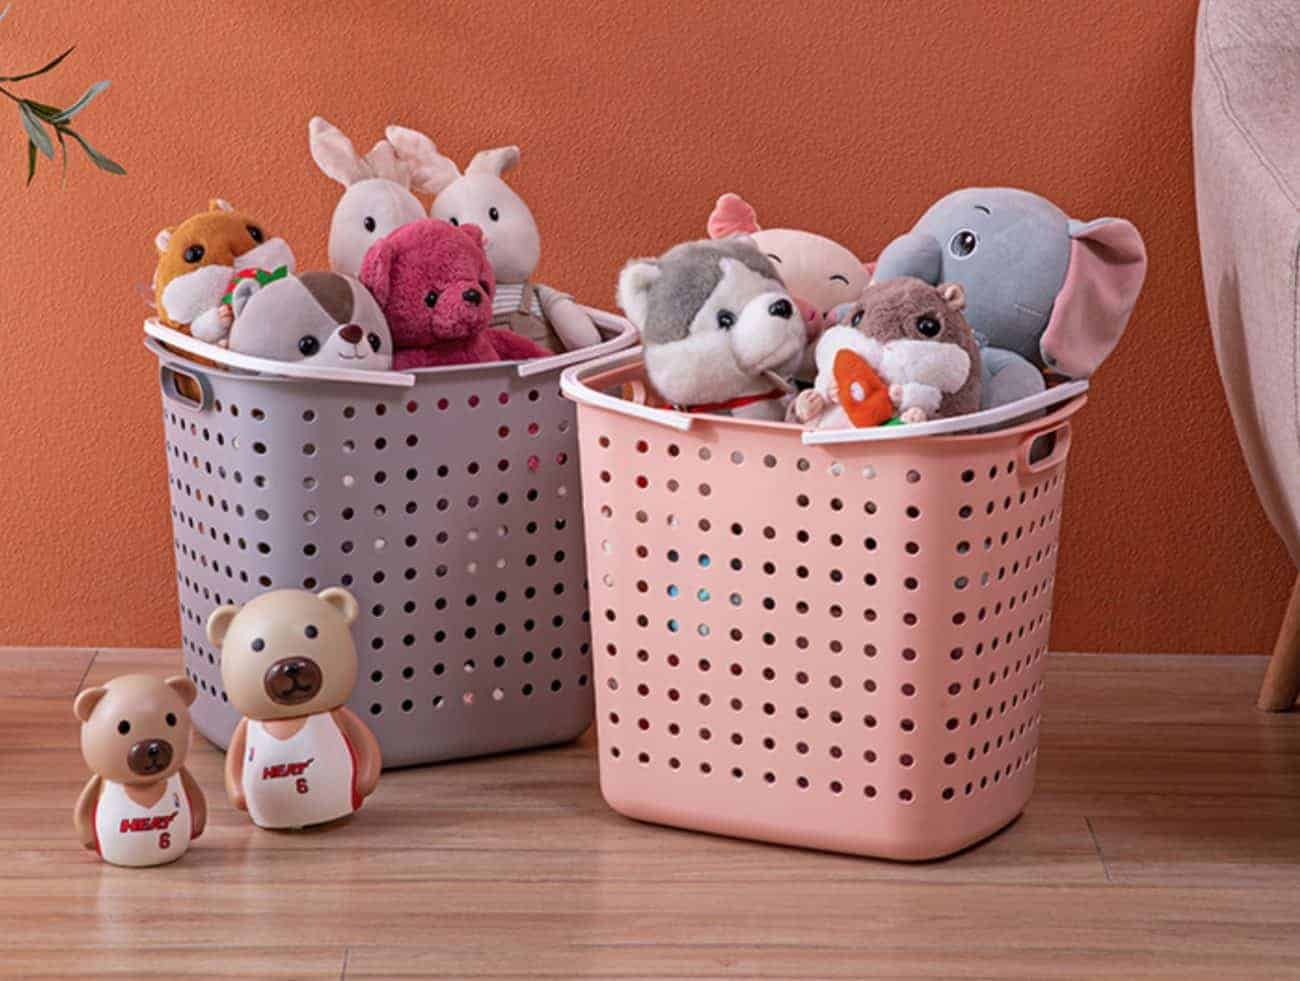 How to Choose the Best Storage Baskets